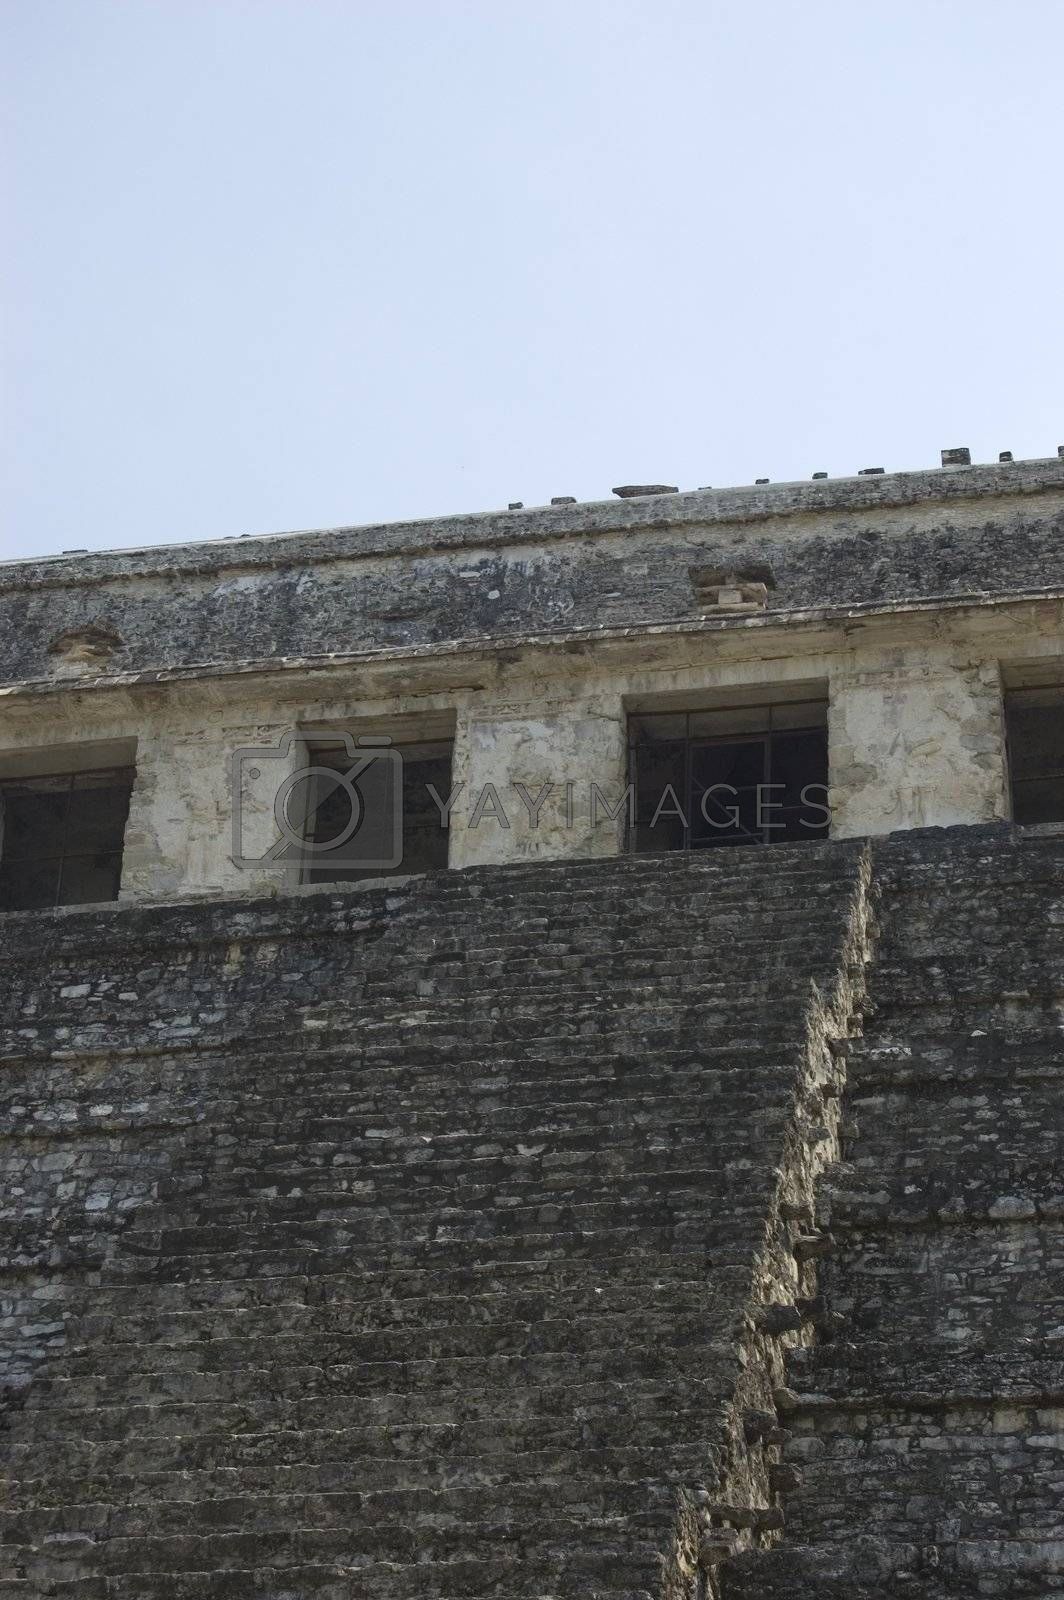 Detail of one of the temples in the mayan ruins of palenque, Chiapas Mexico